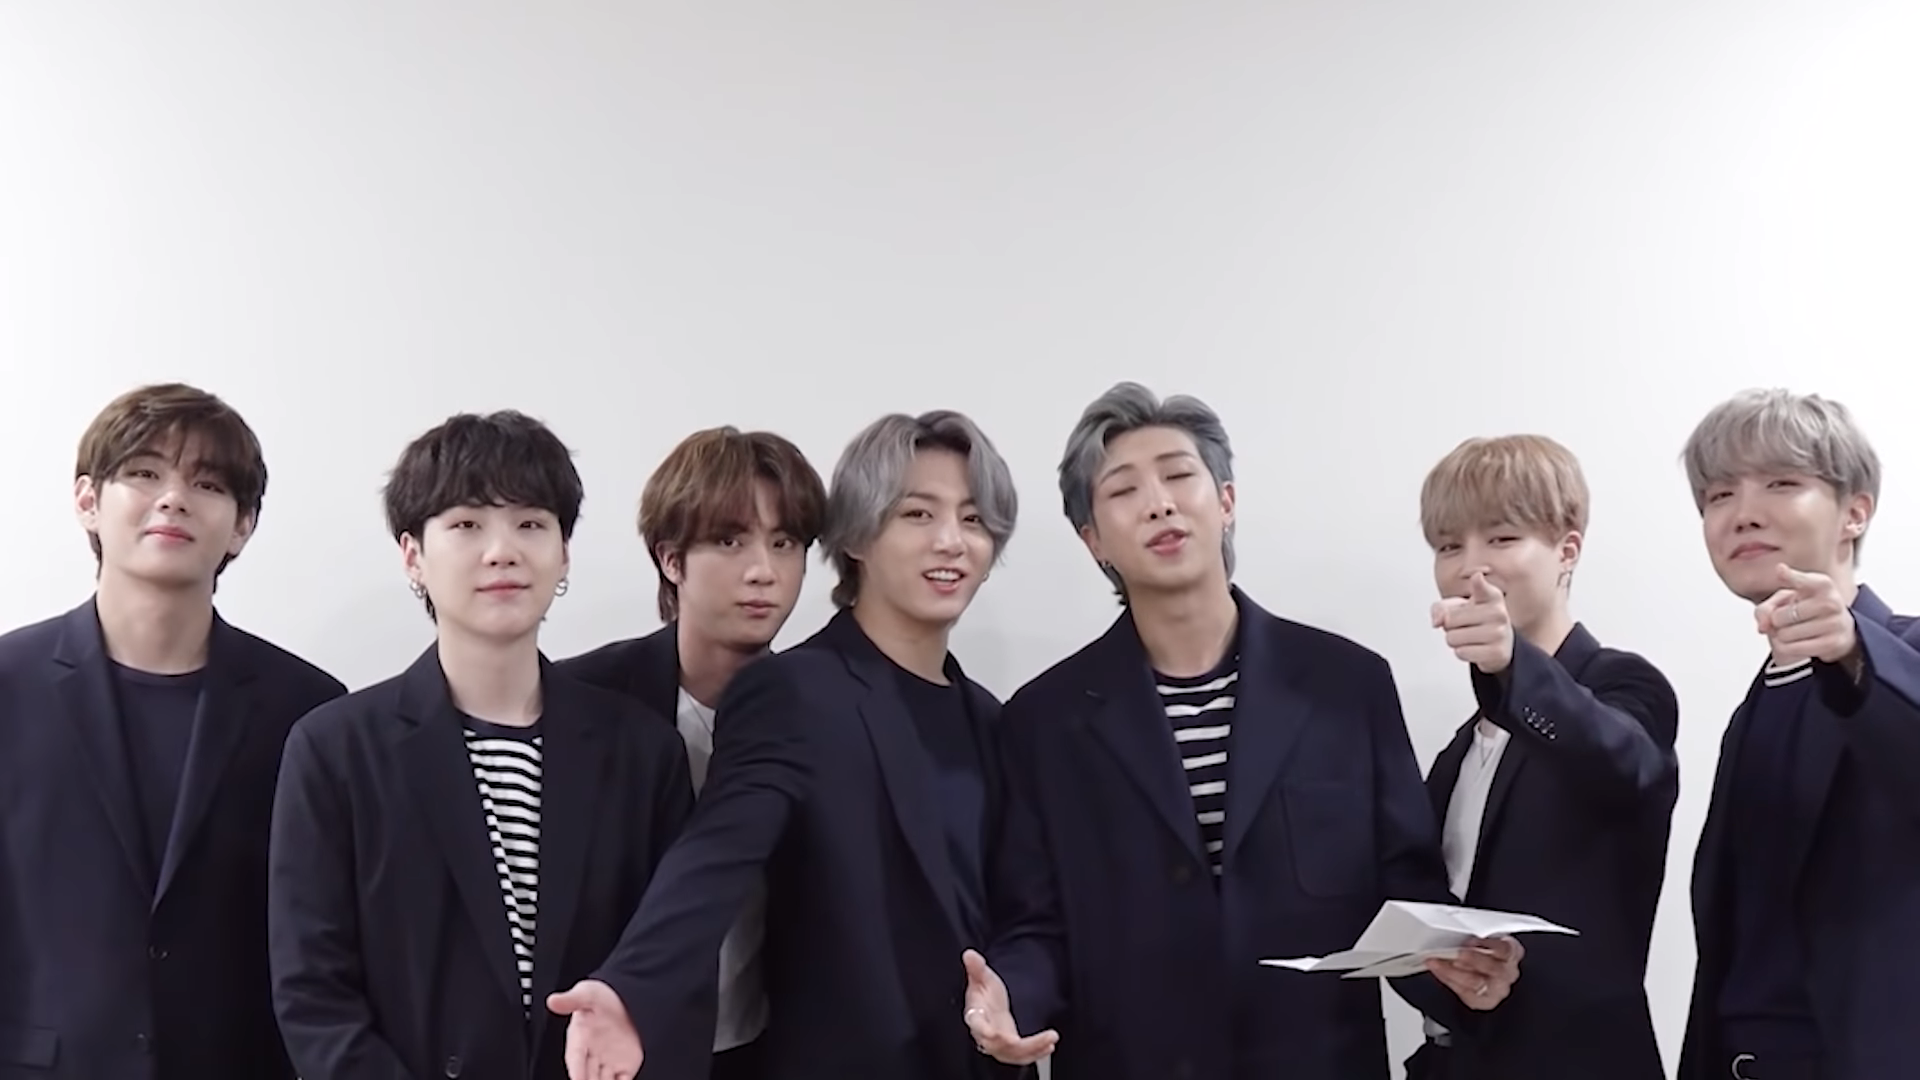 BTS Reacts To Being Nominated For An iHeartRadio Music Award! 0-42 screenshot